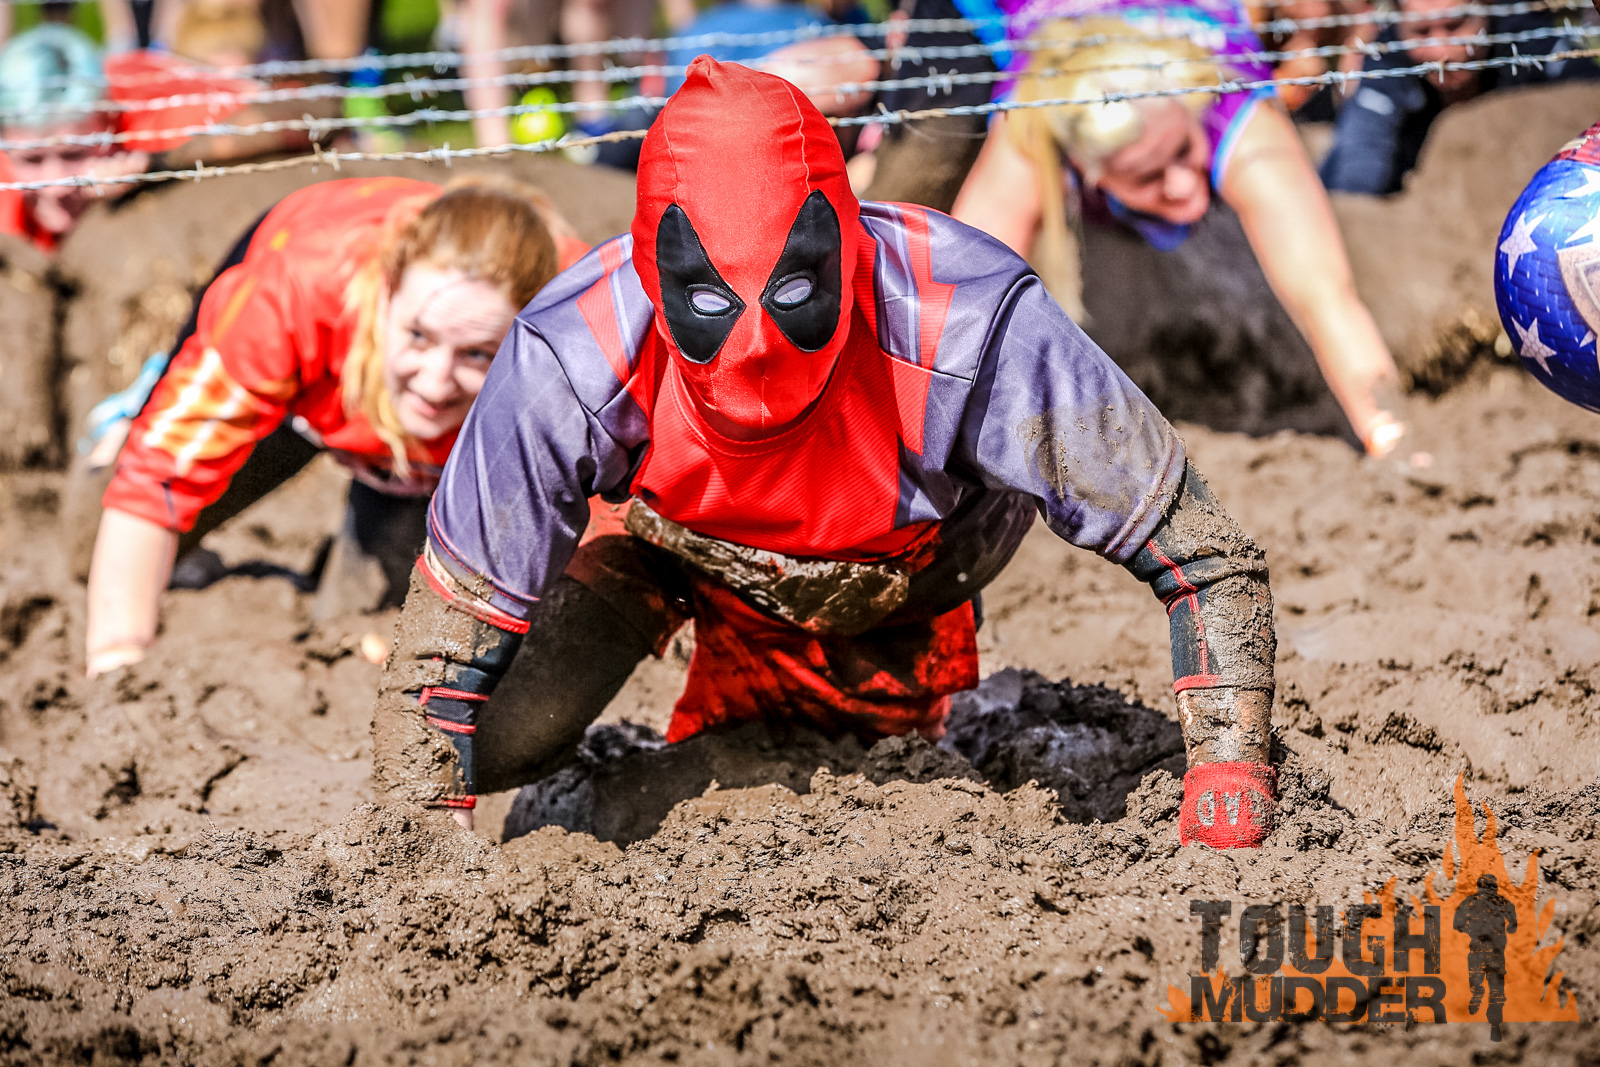 Tough-mudder-2017-sports-photography-edinburgh-glasgow-11.jpg